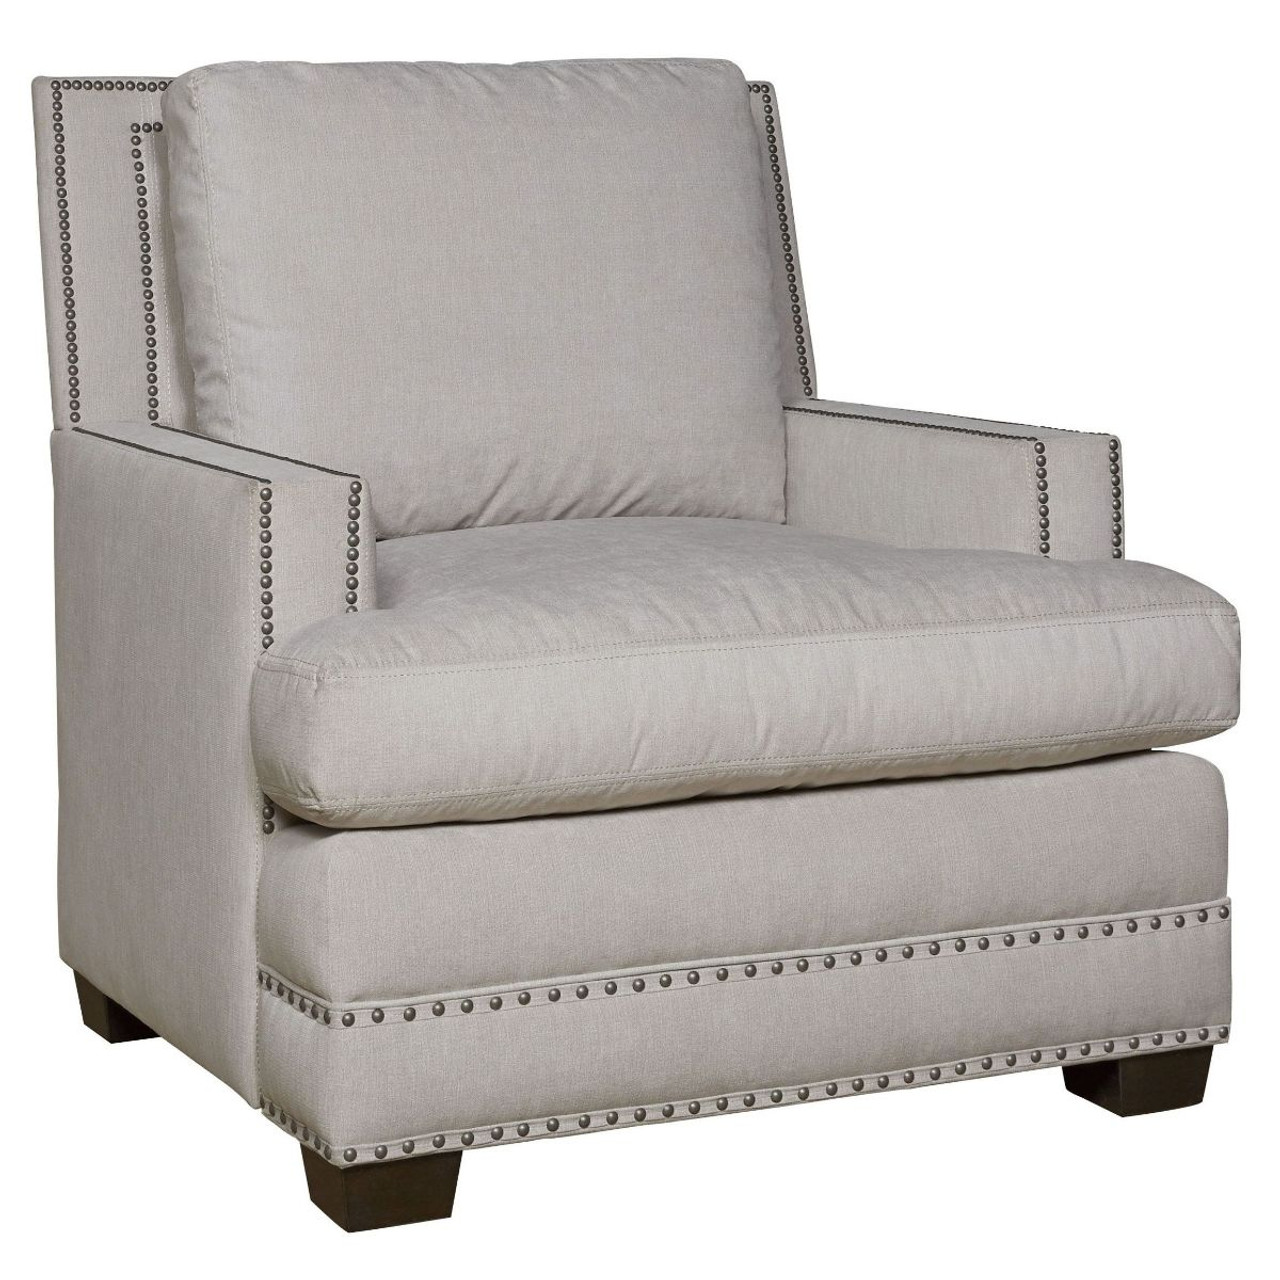 Astounding Franklin Upholstered Accent Chair With Nailheads Gmtry Best Dining Table And Chair Ideas Images Gmtryco